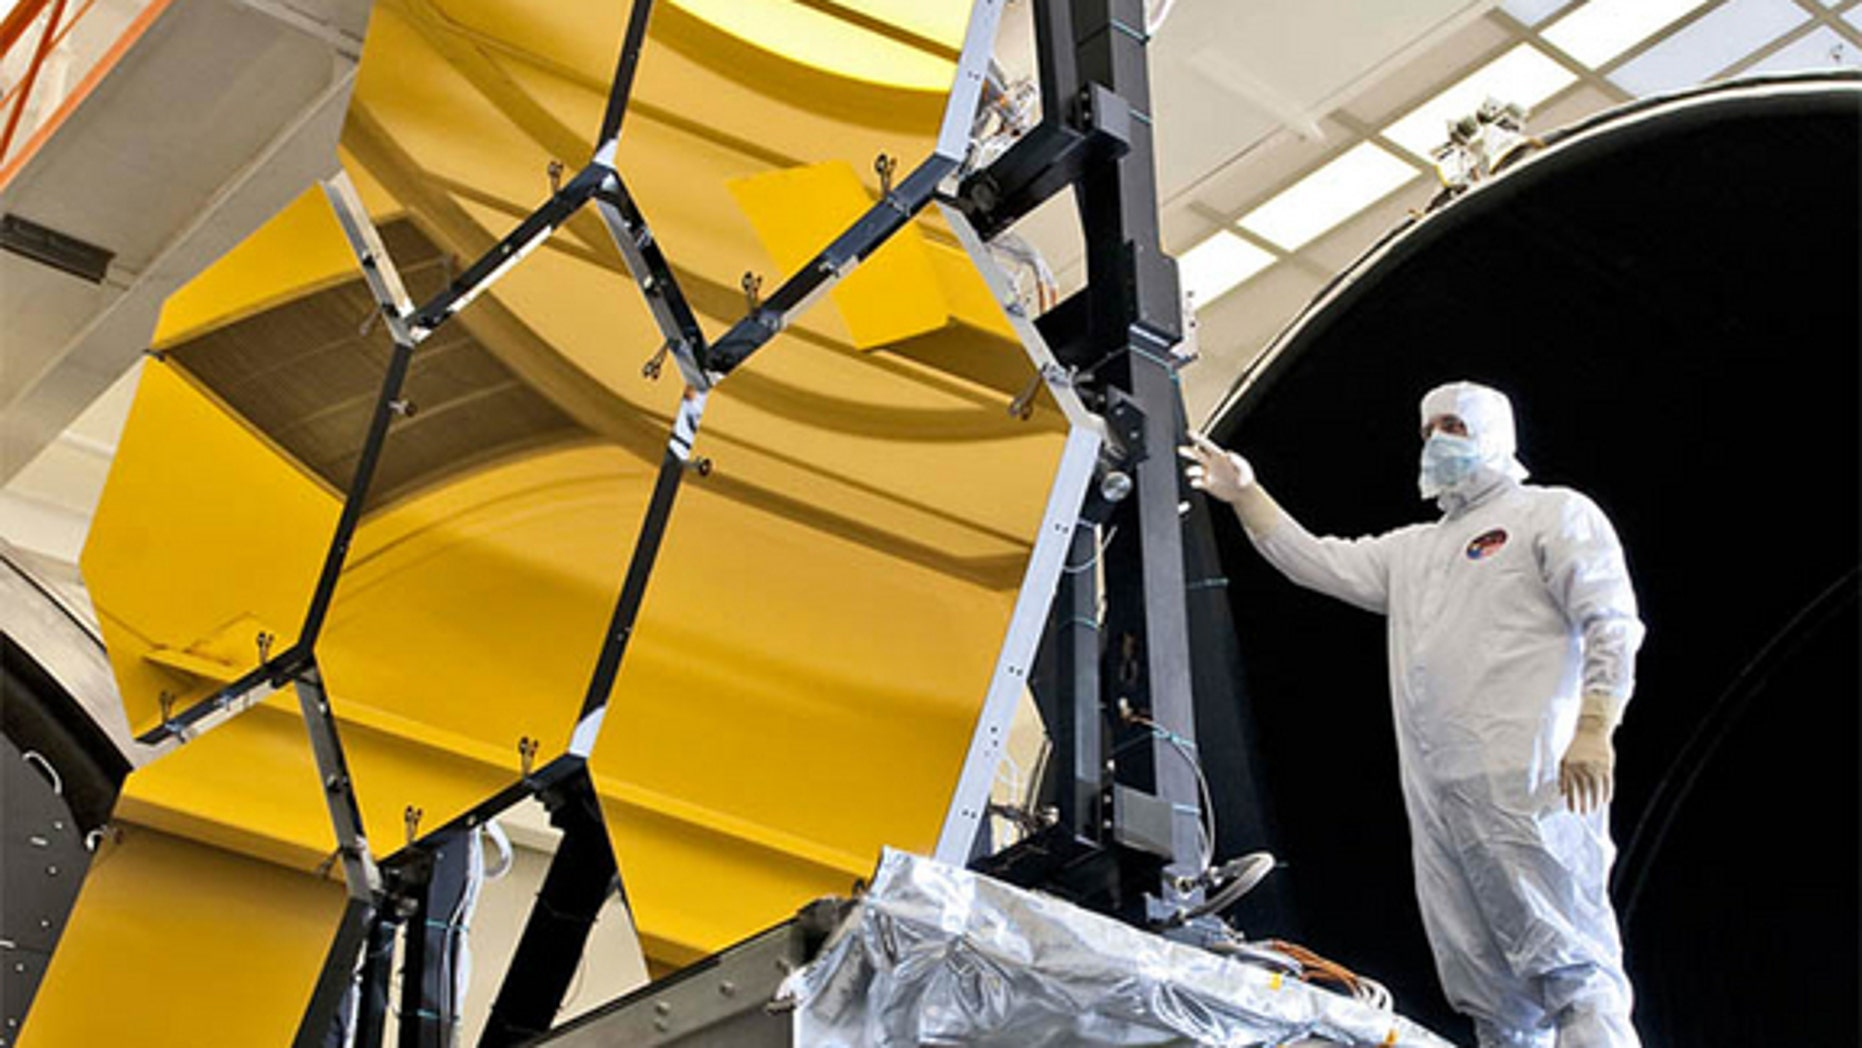 An engineer inspects the JWST's primary mirror segments at NASA's Marshall Space Flight Center in Huntsville,